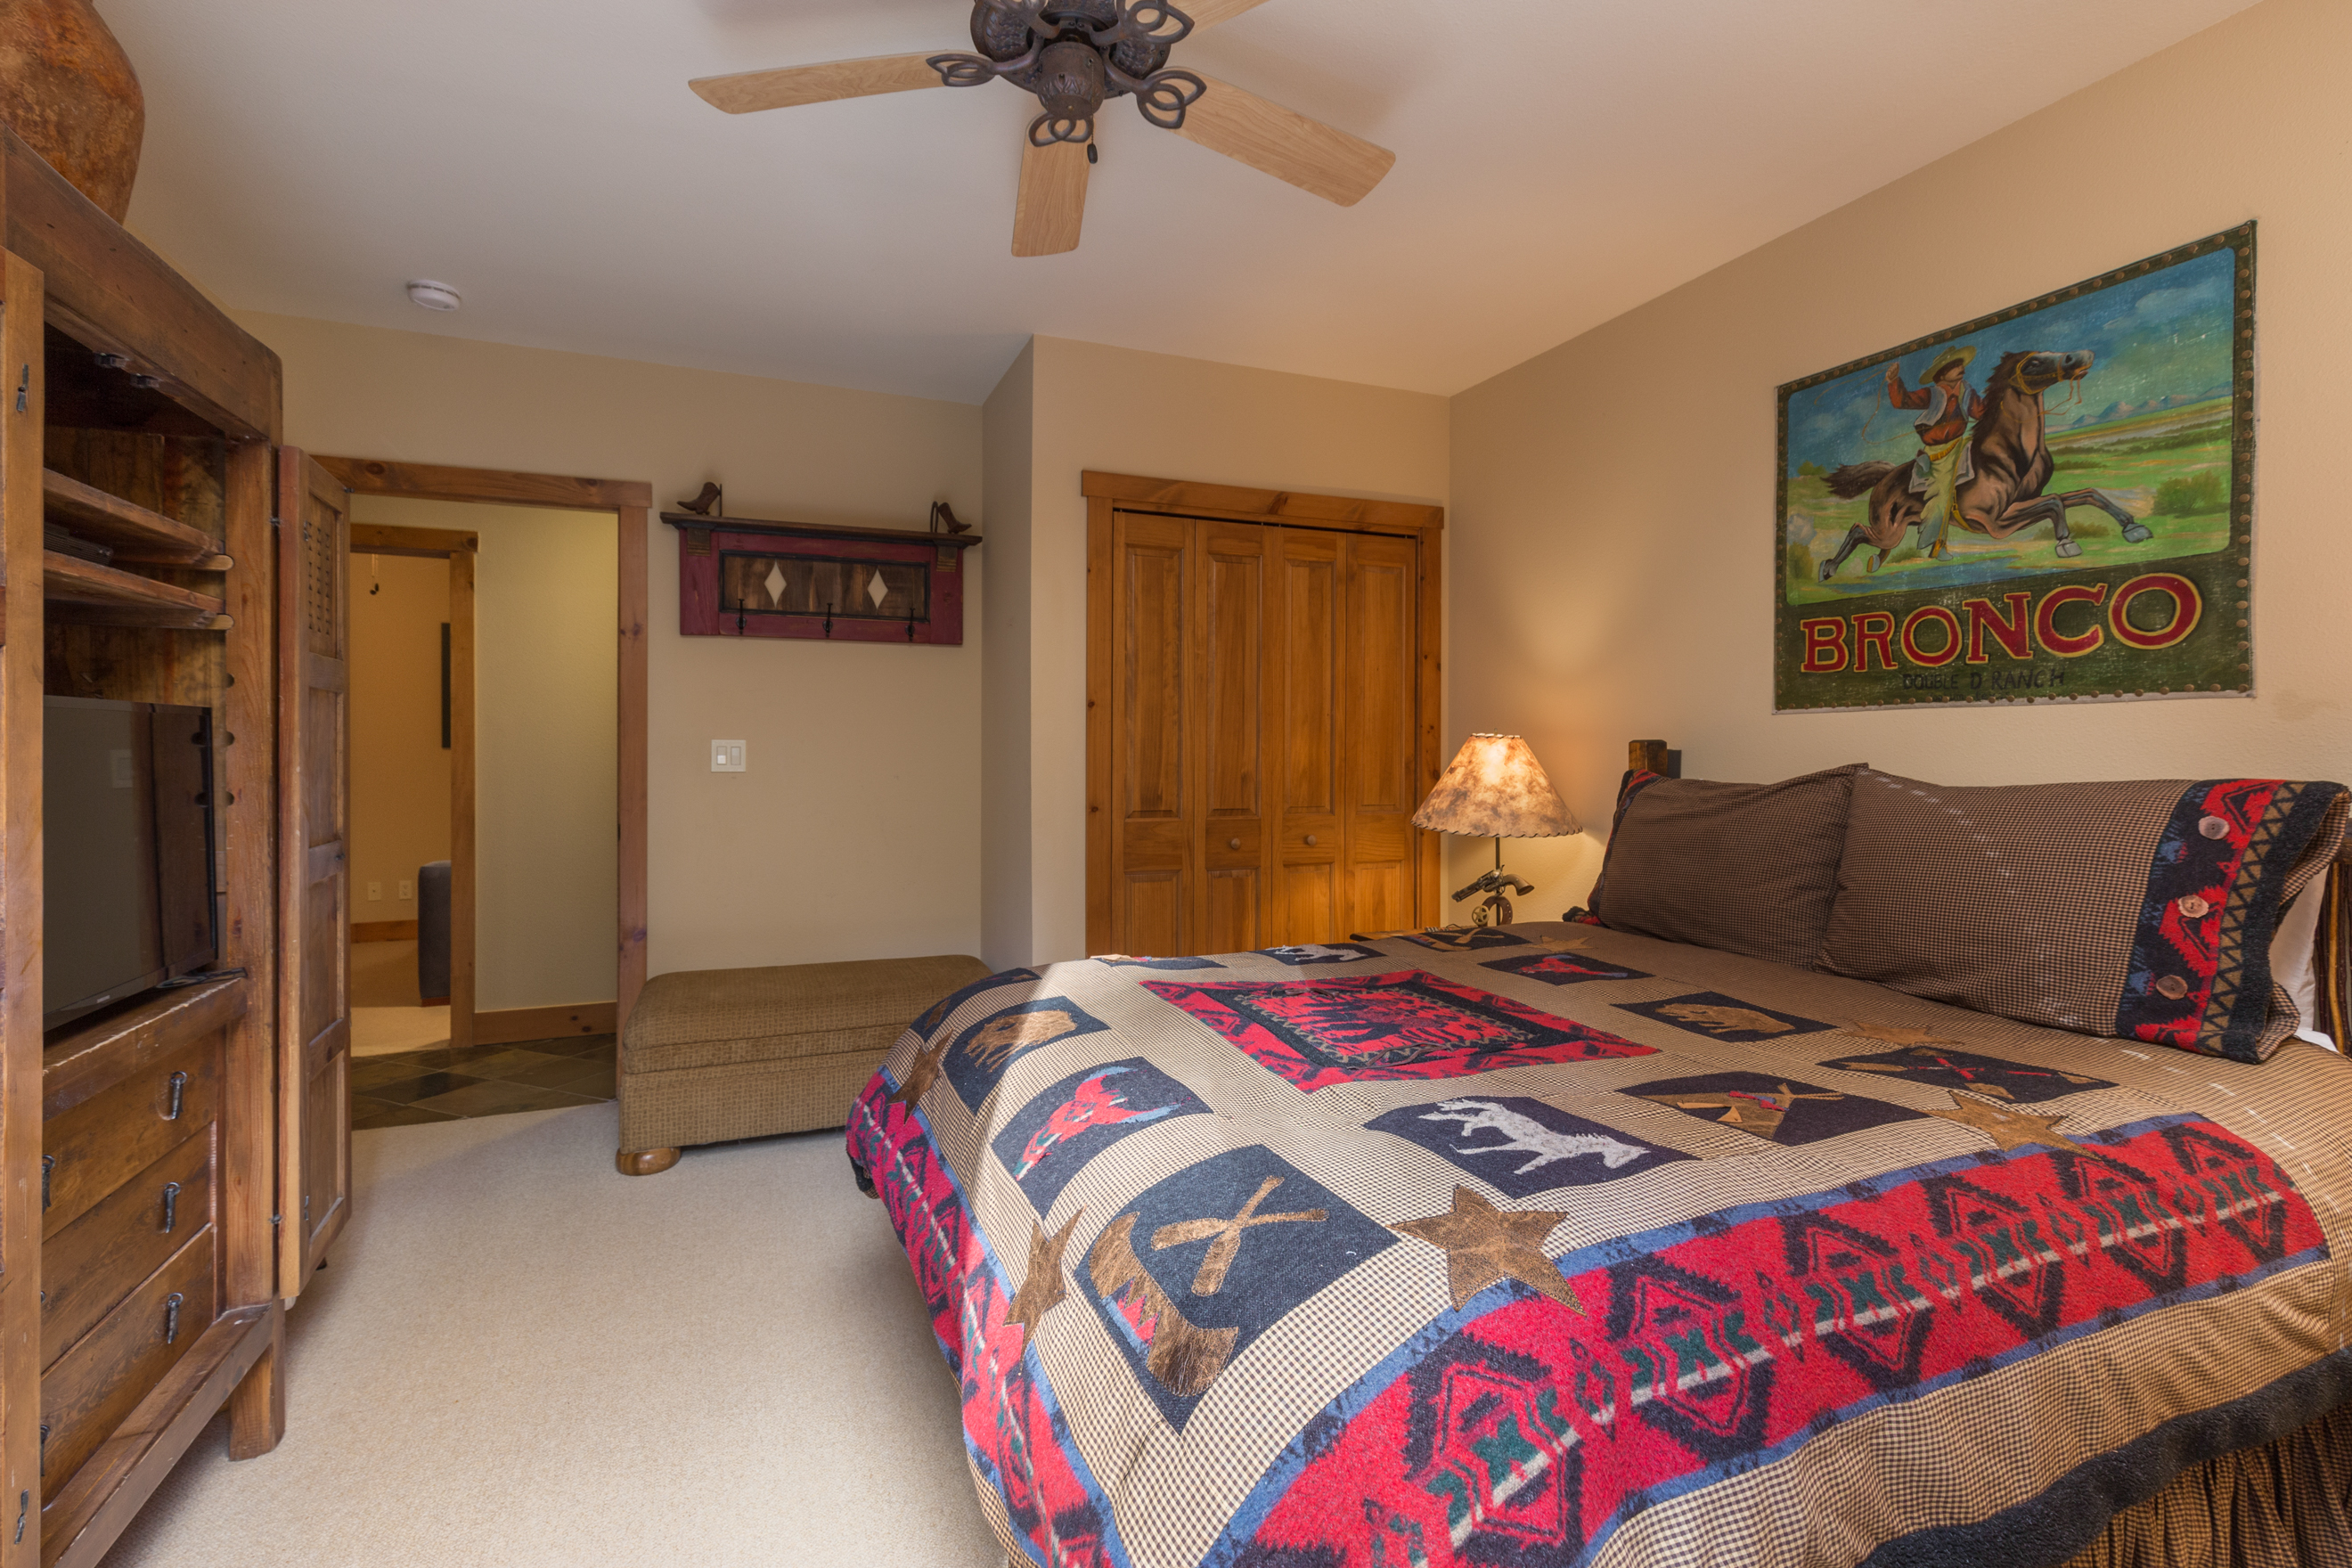 The second guest bedroom features a queen-sized bed, a flat screen TV and its own private balcony.